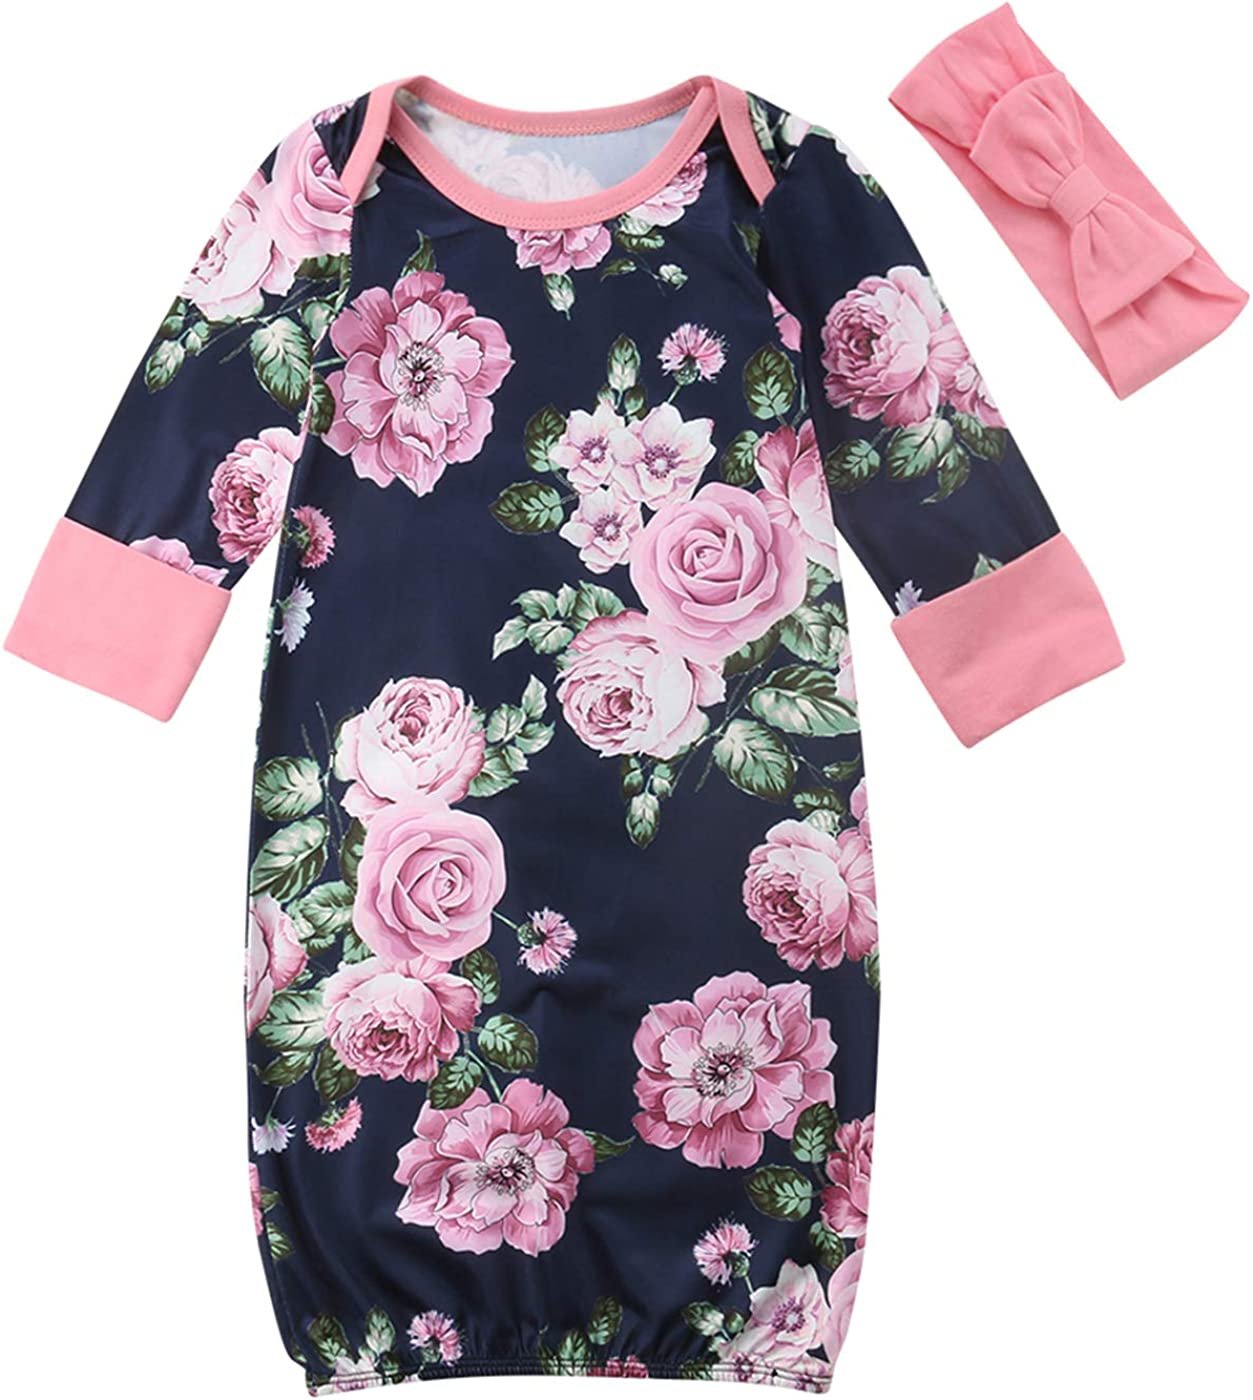 Newborn Baby Girls Floral Nightgown Raleigh Mall Sleeve Pajamas Long Ou Robes Limited price